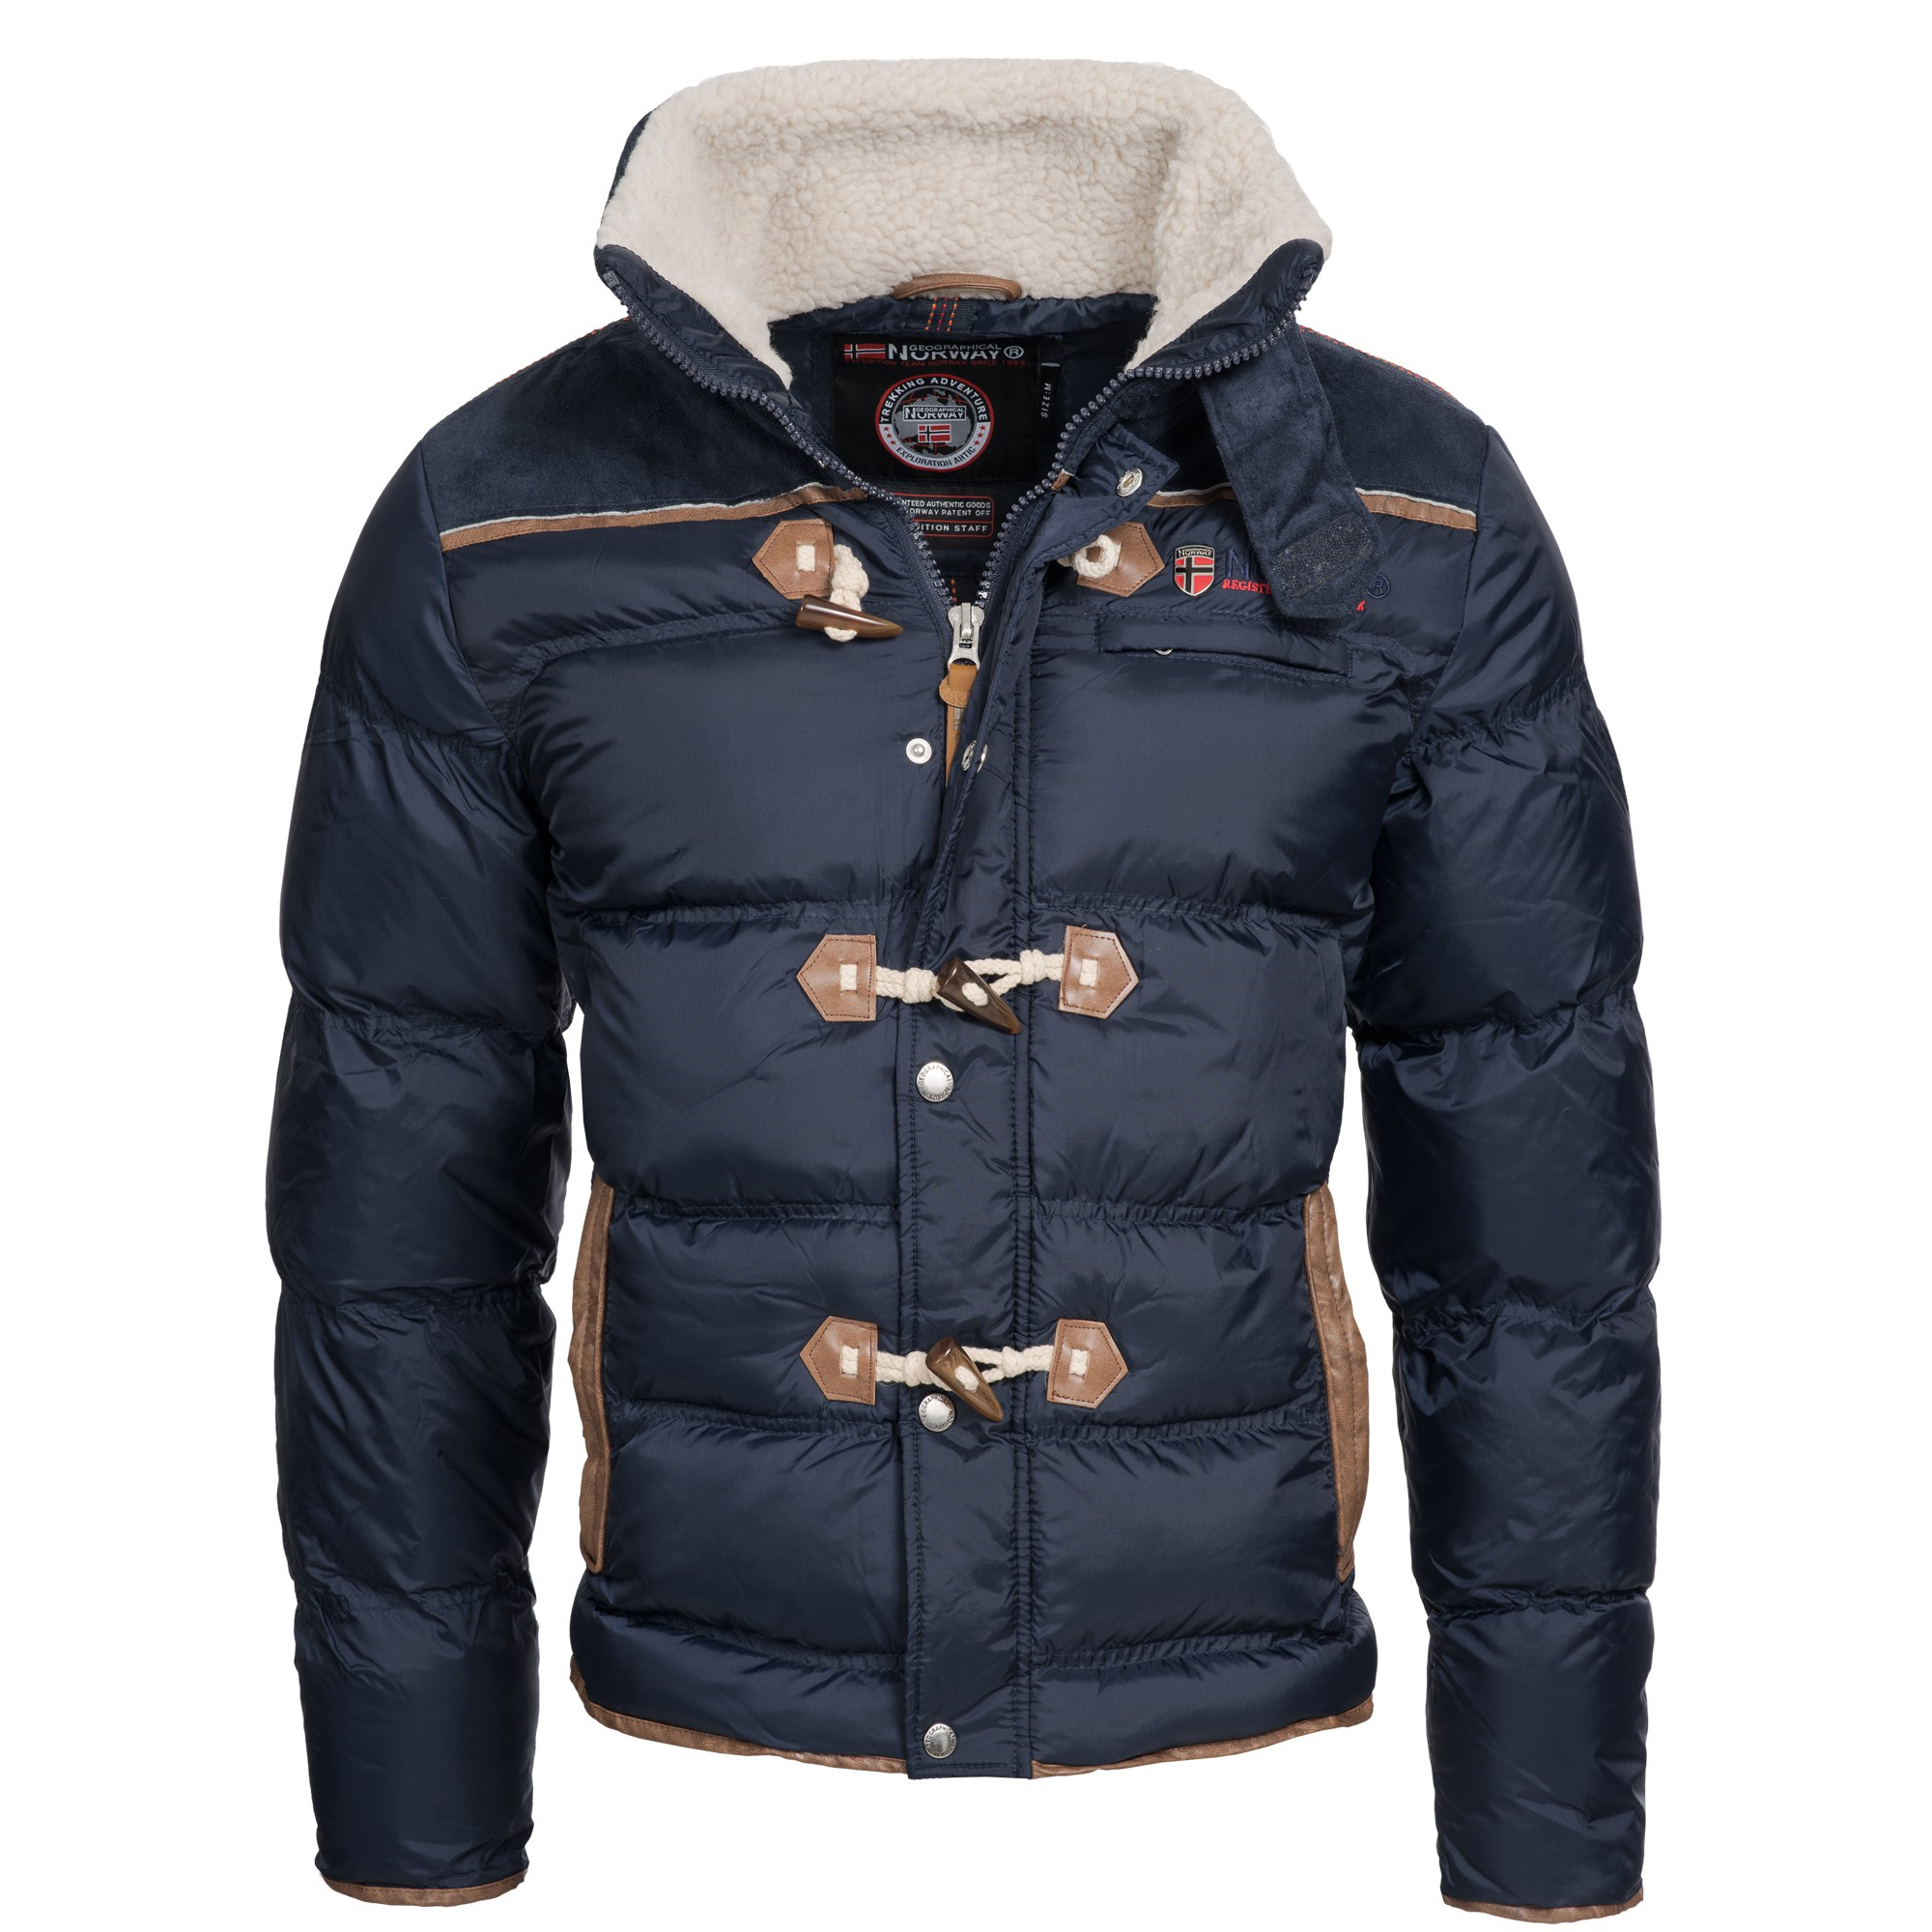 geographical norway amaury herren winterjacke jacke steppjacke duffle gr s xxl ebay. Black Bedroom Furniture Sets. Home Design Ideas